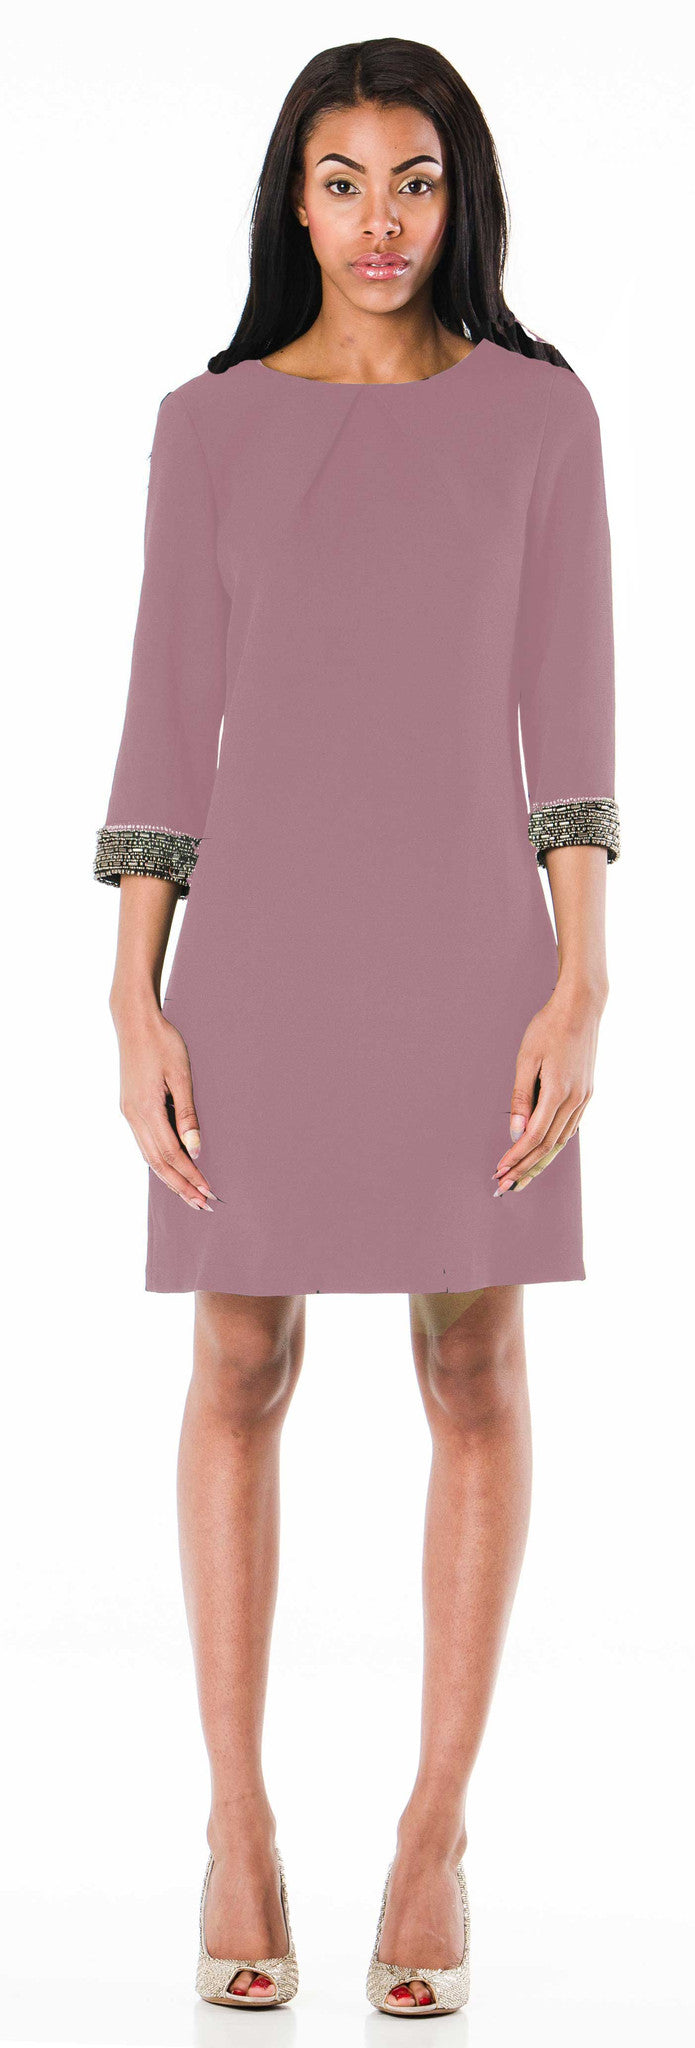 Lafayette Shift Dress Blush